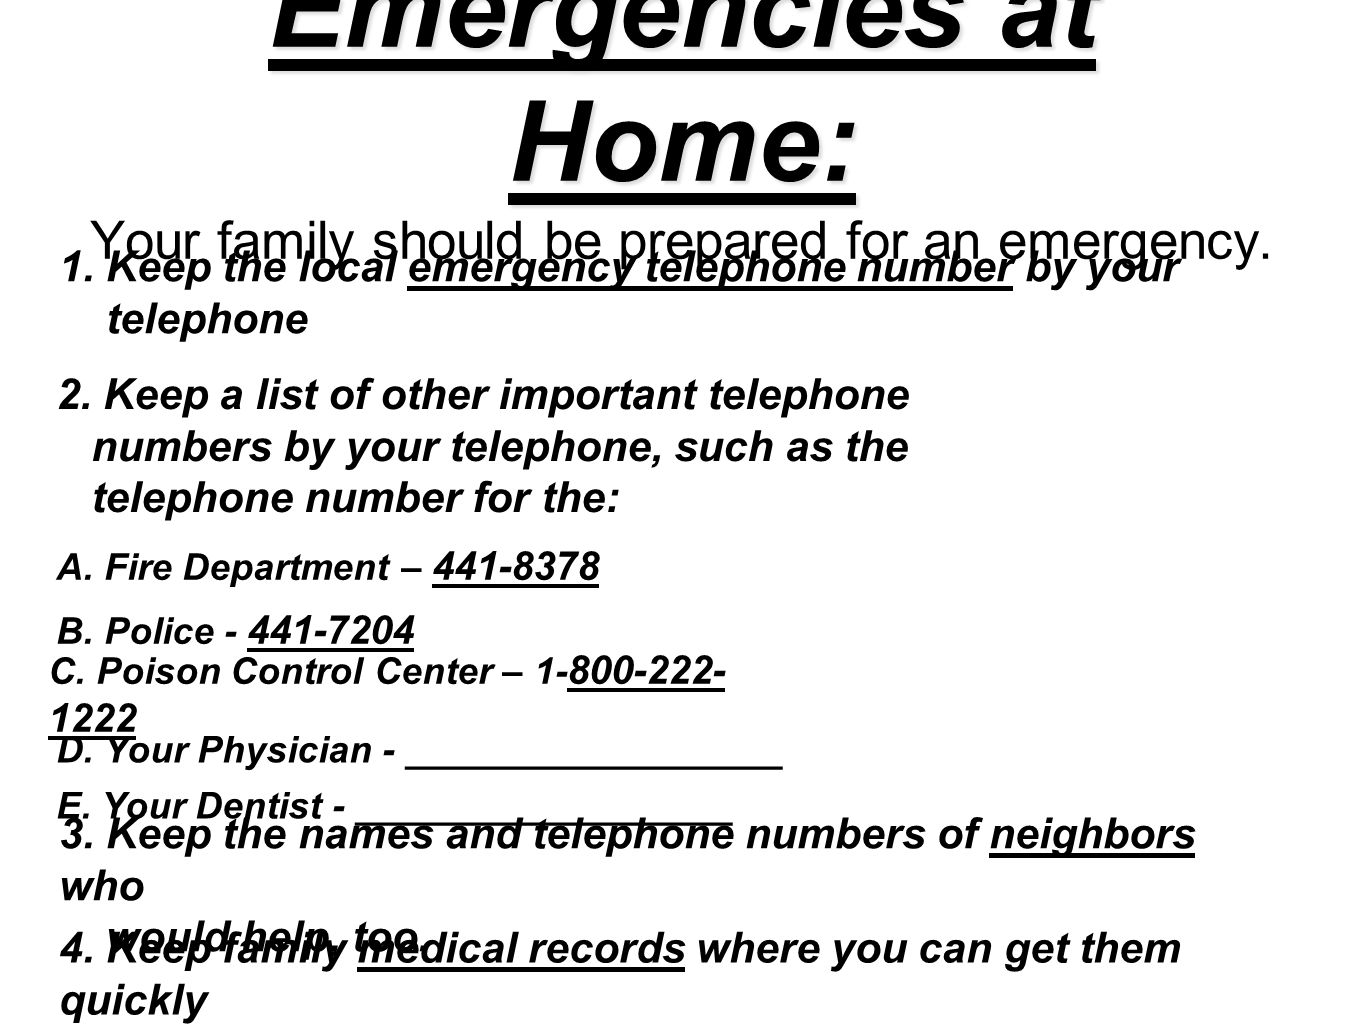 Emergencies at Home: Emergencies at Home: Your family should be prepared for an emergency. 1. Keep the local emergency telephone number by your teleph